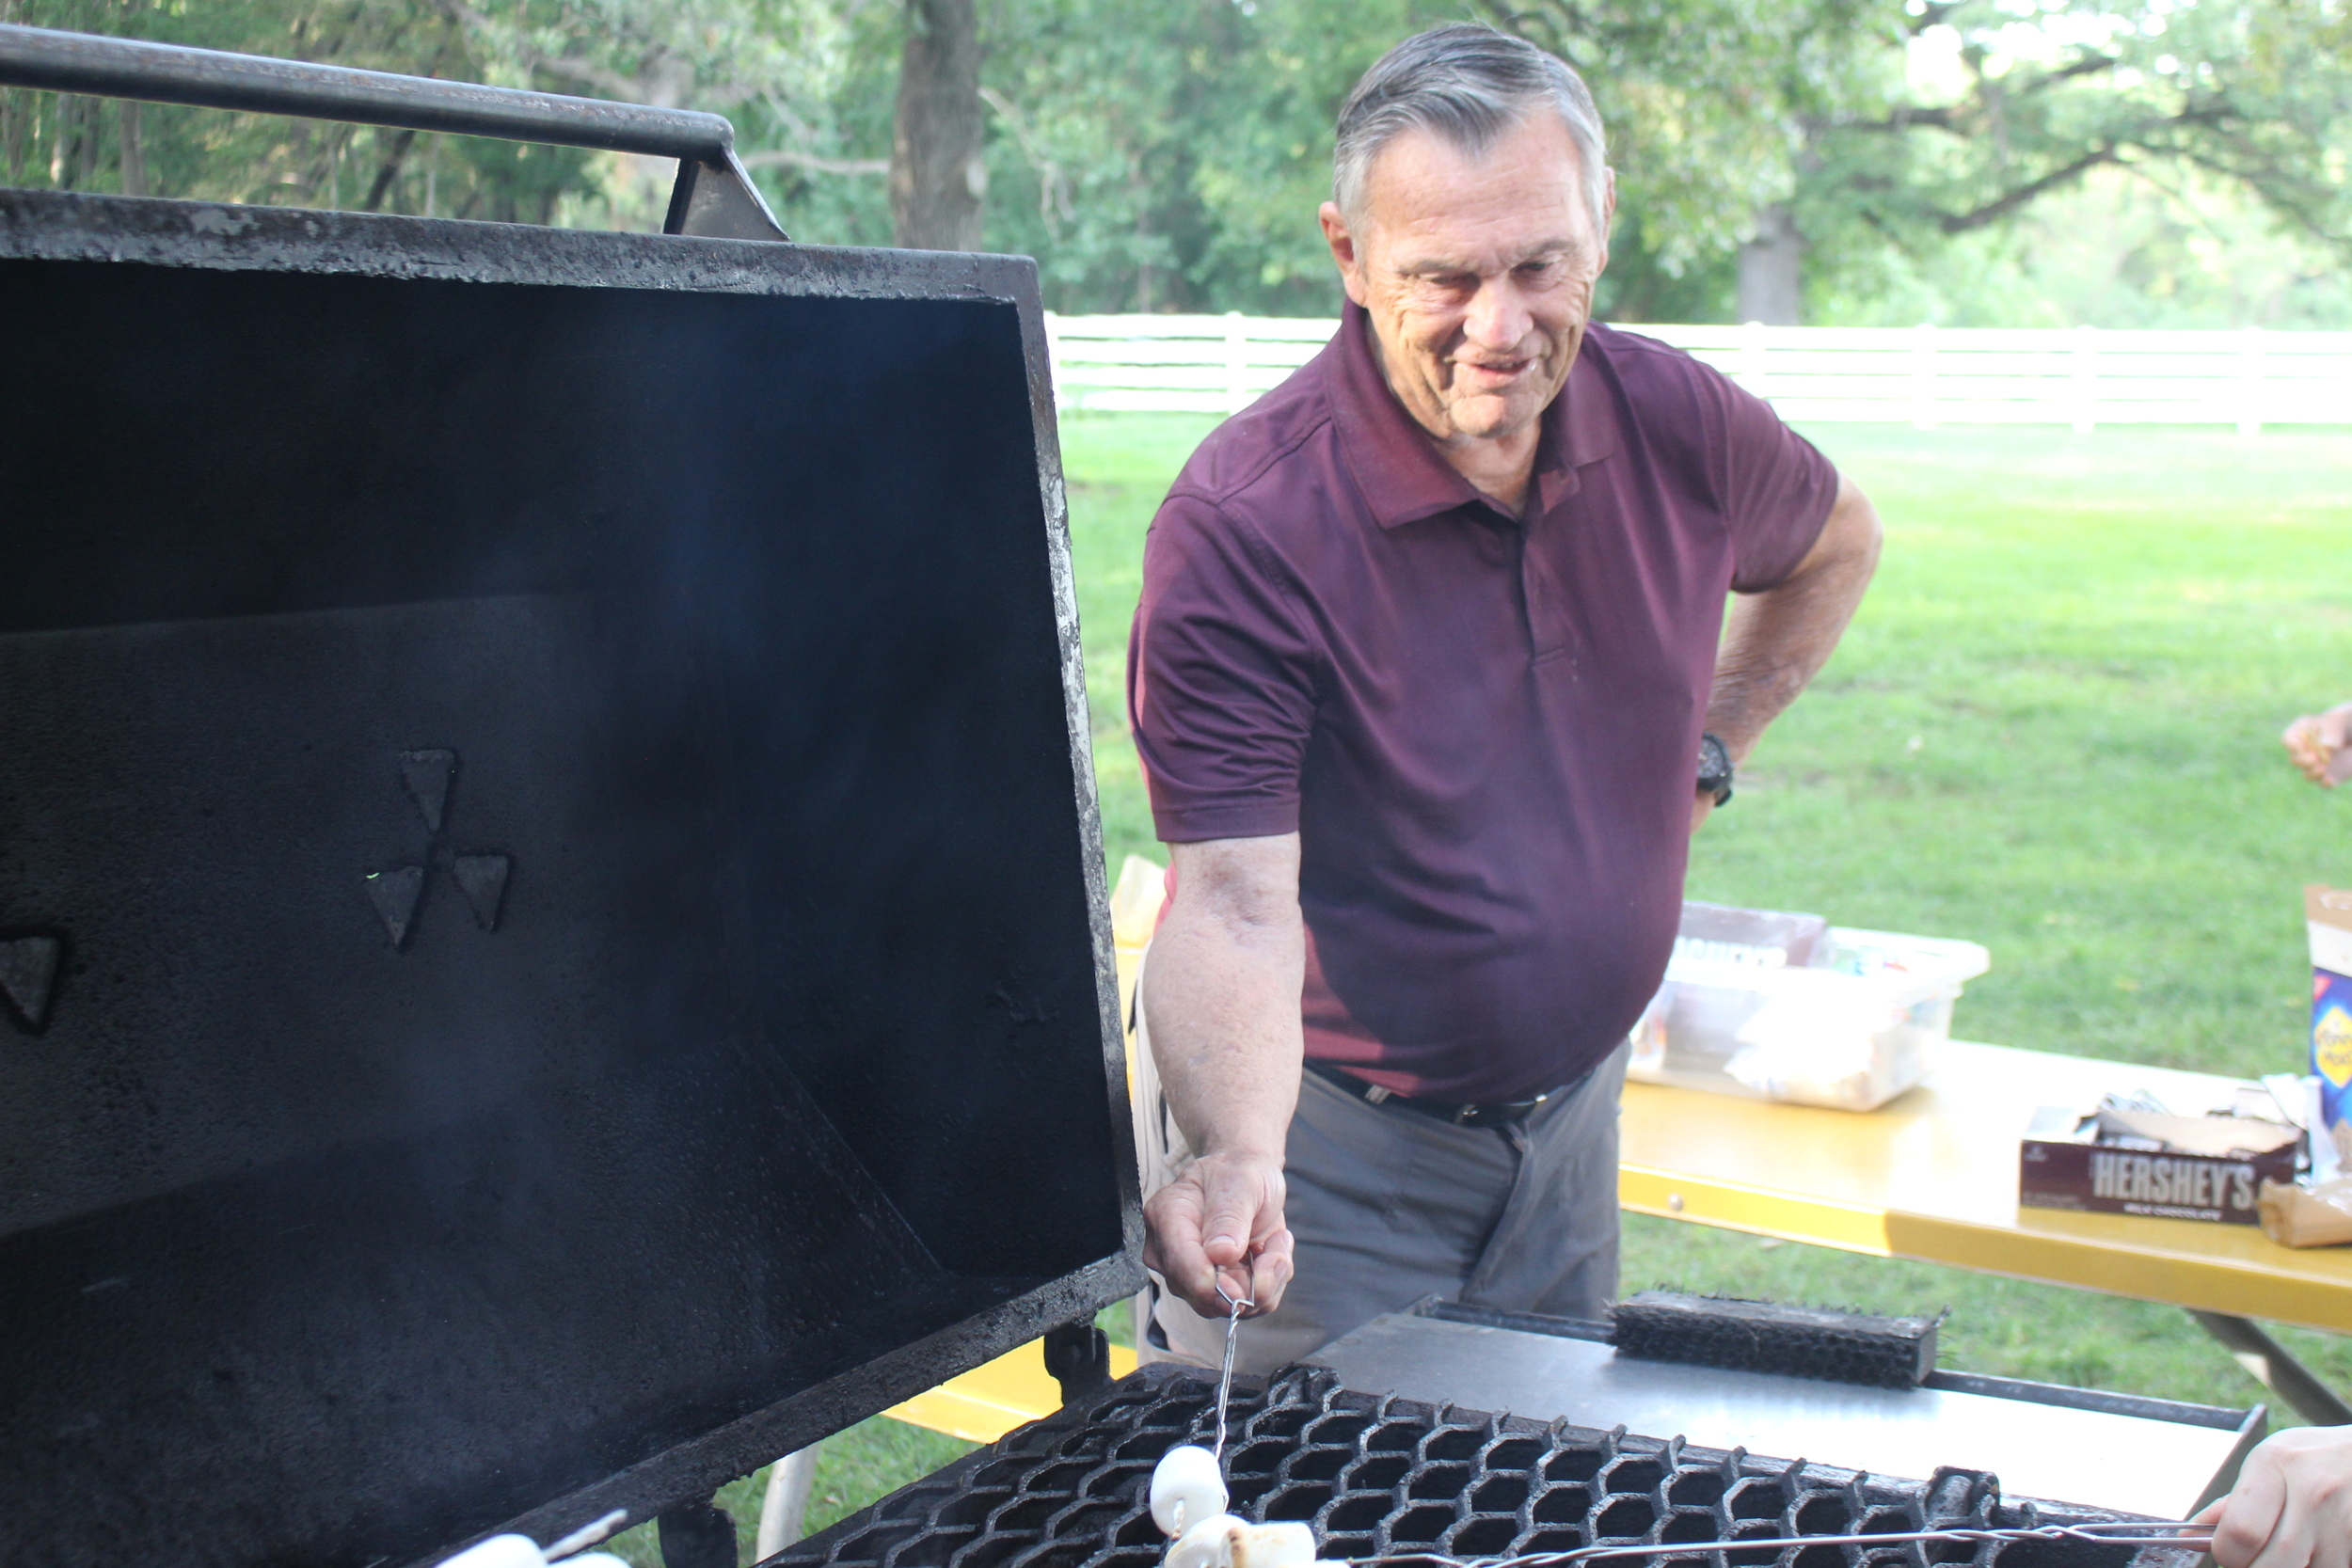 Dick Corwine shows us how to make a s'more